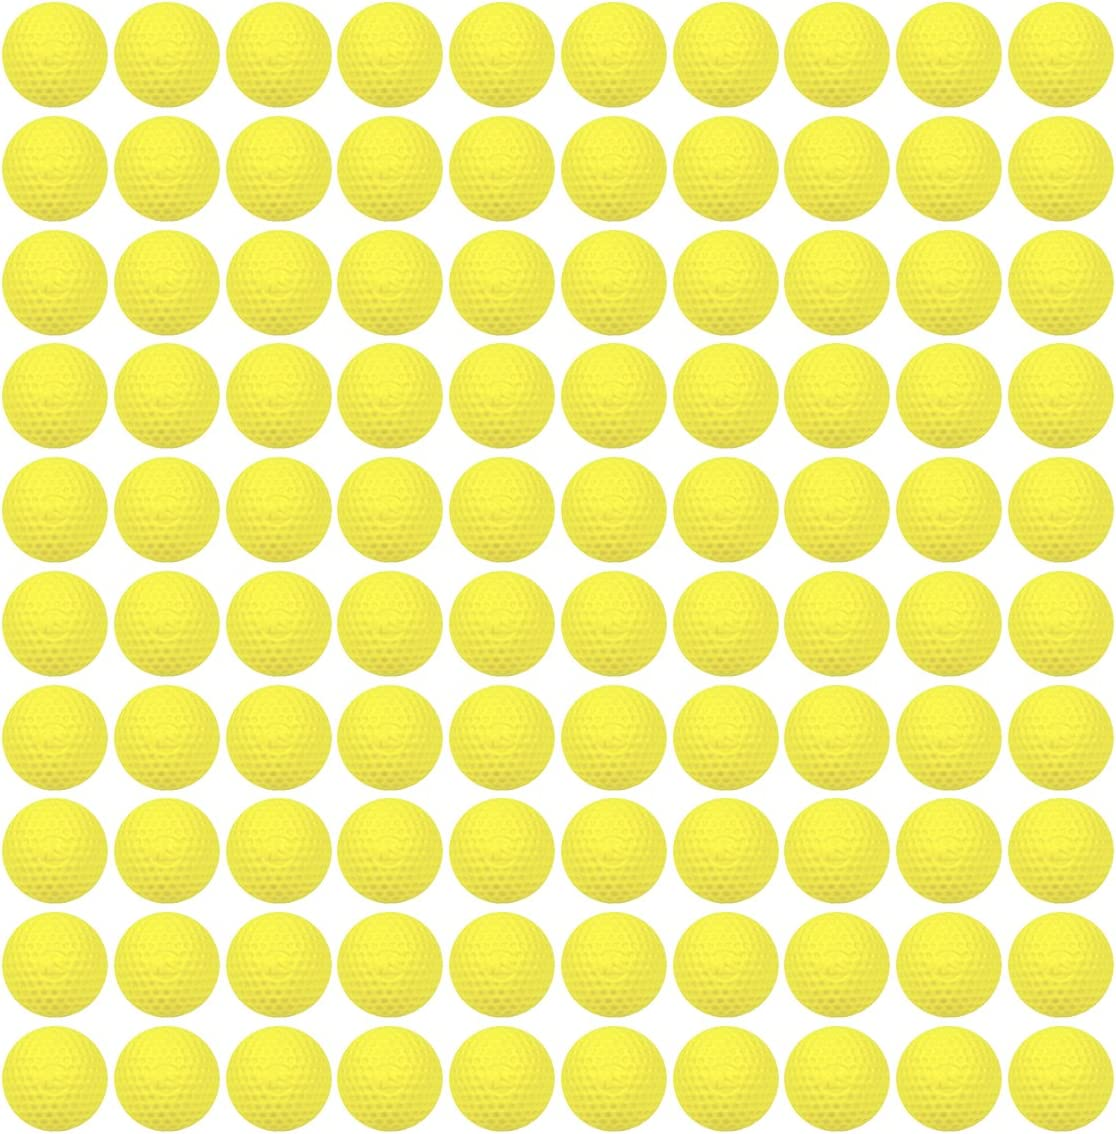 All items free shipping HeadShot Ammo Foam Balls for Toy Gun 100 Co Cheap mail order shopping - Pack Refill Rounds